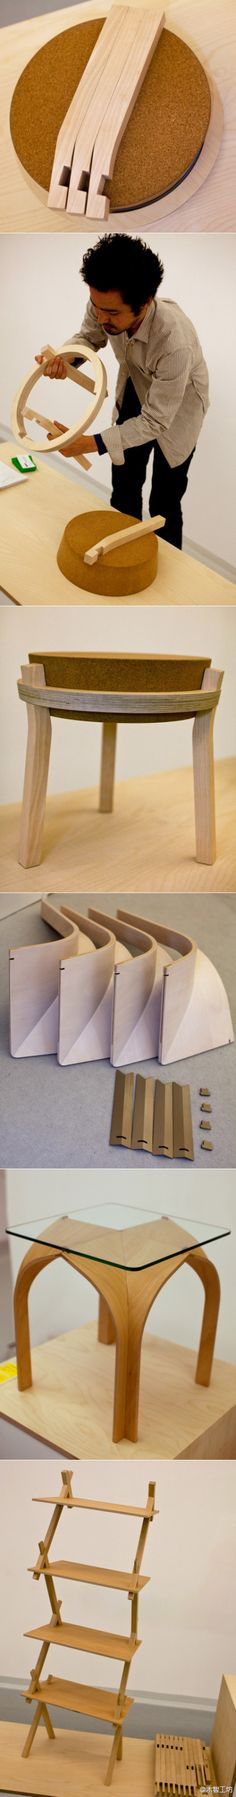 This could be a stool or a table.